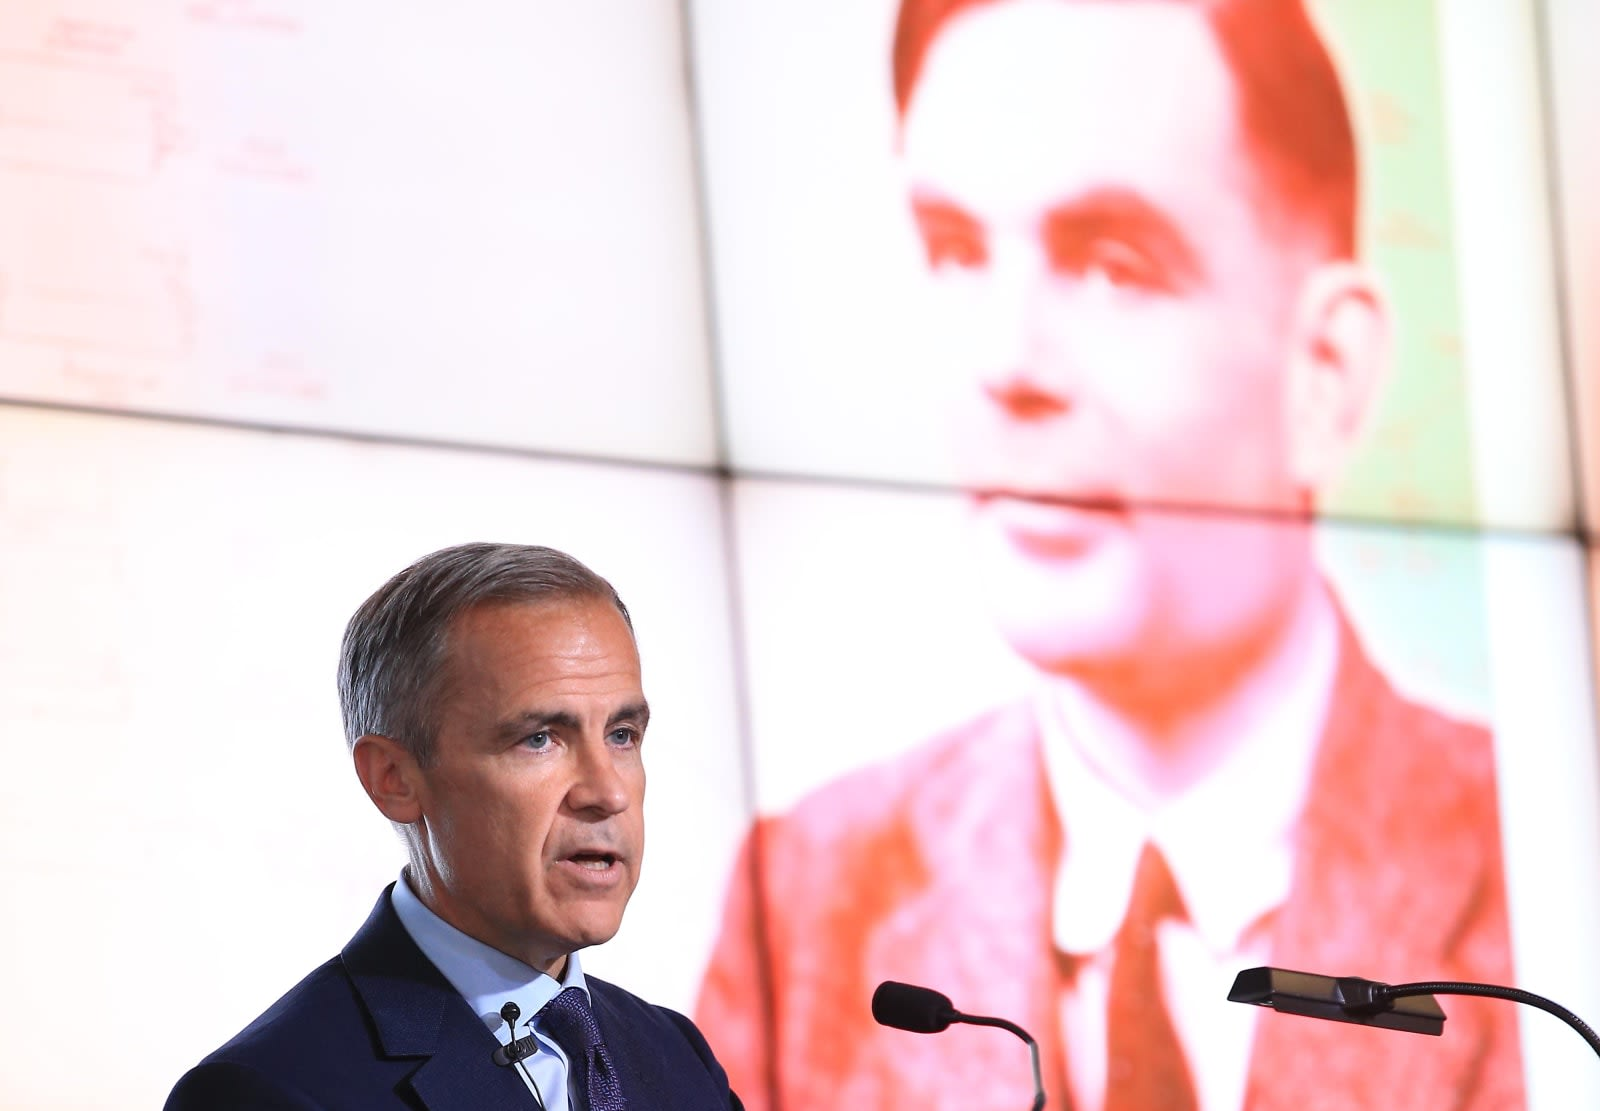 The Bank of England will honor Alan Turing on its new £50 note